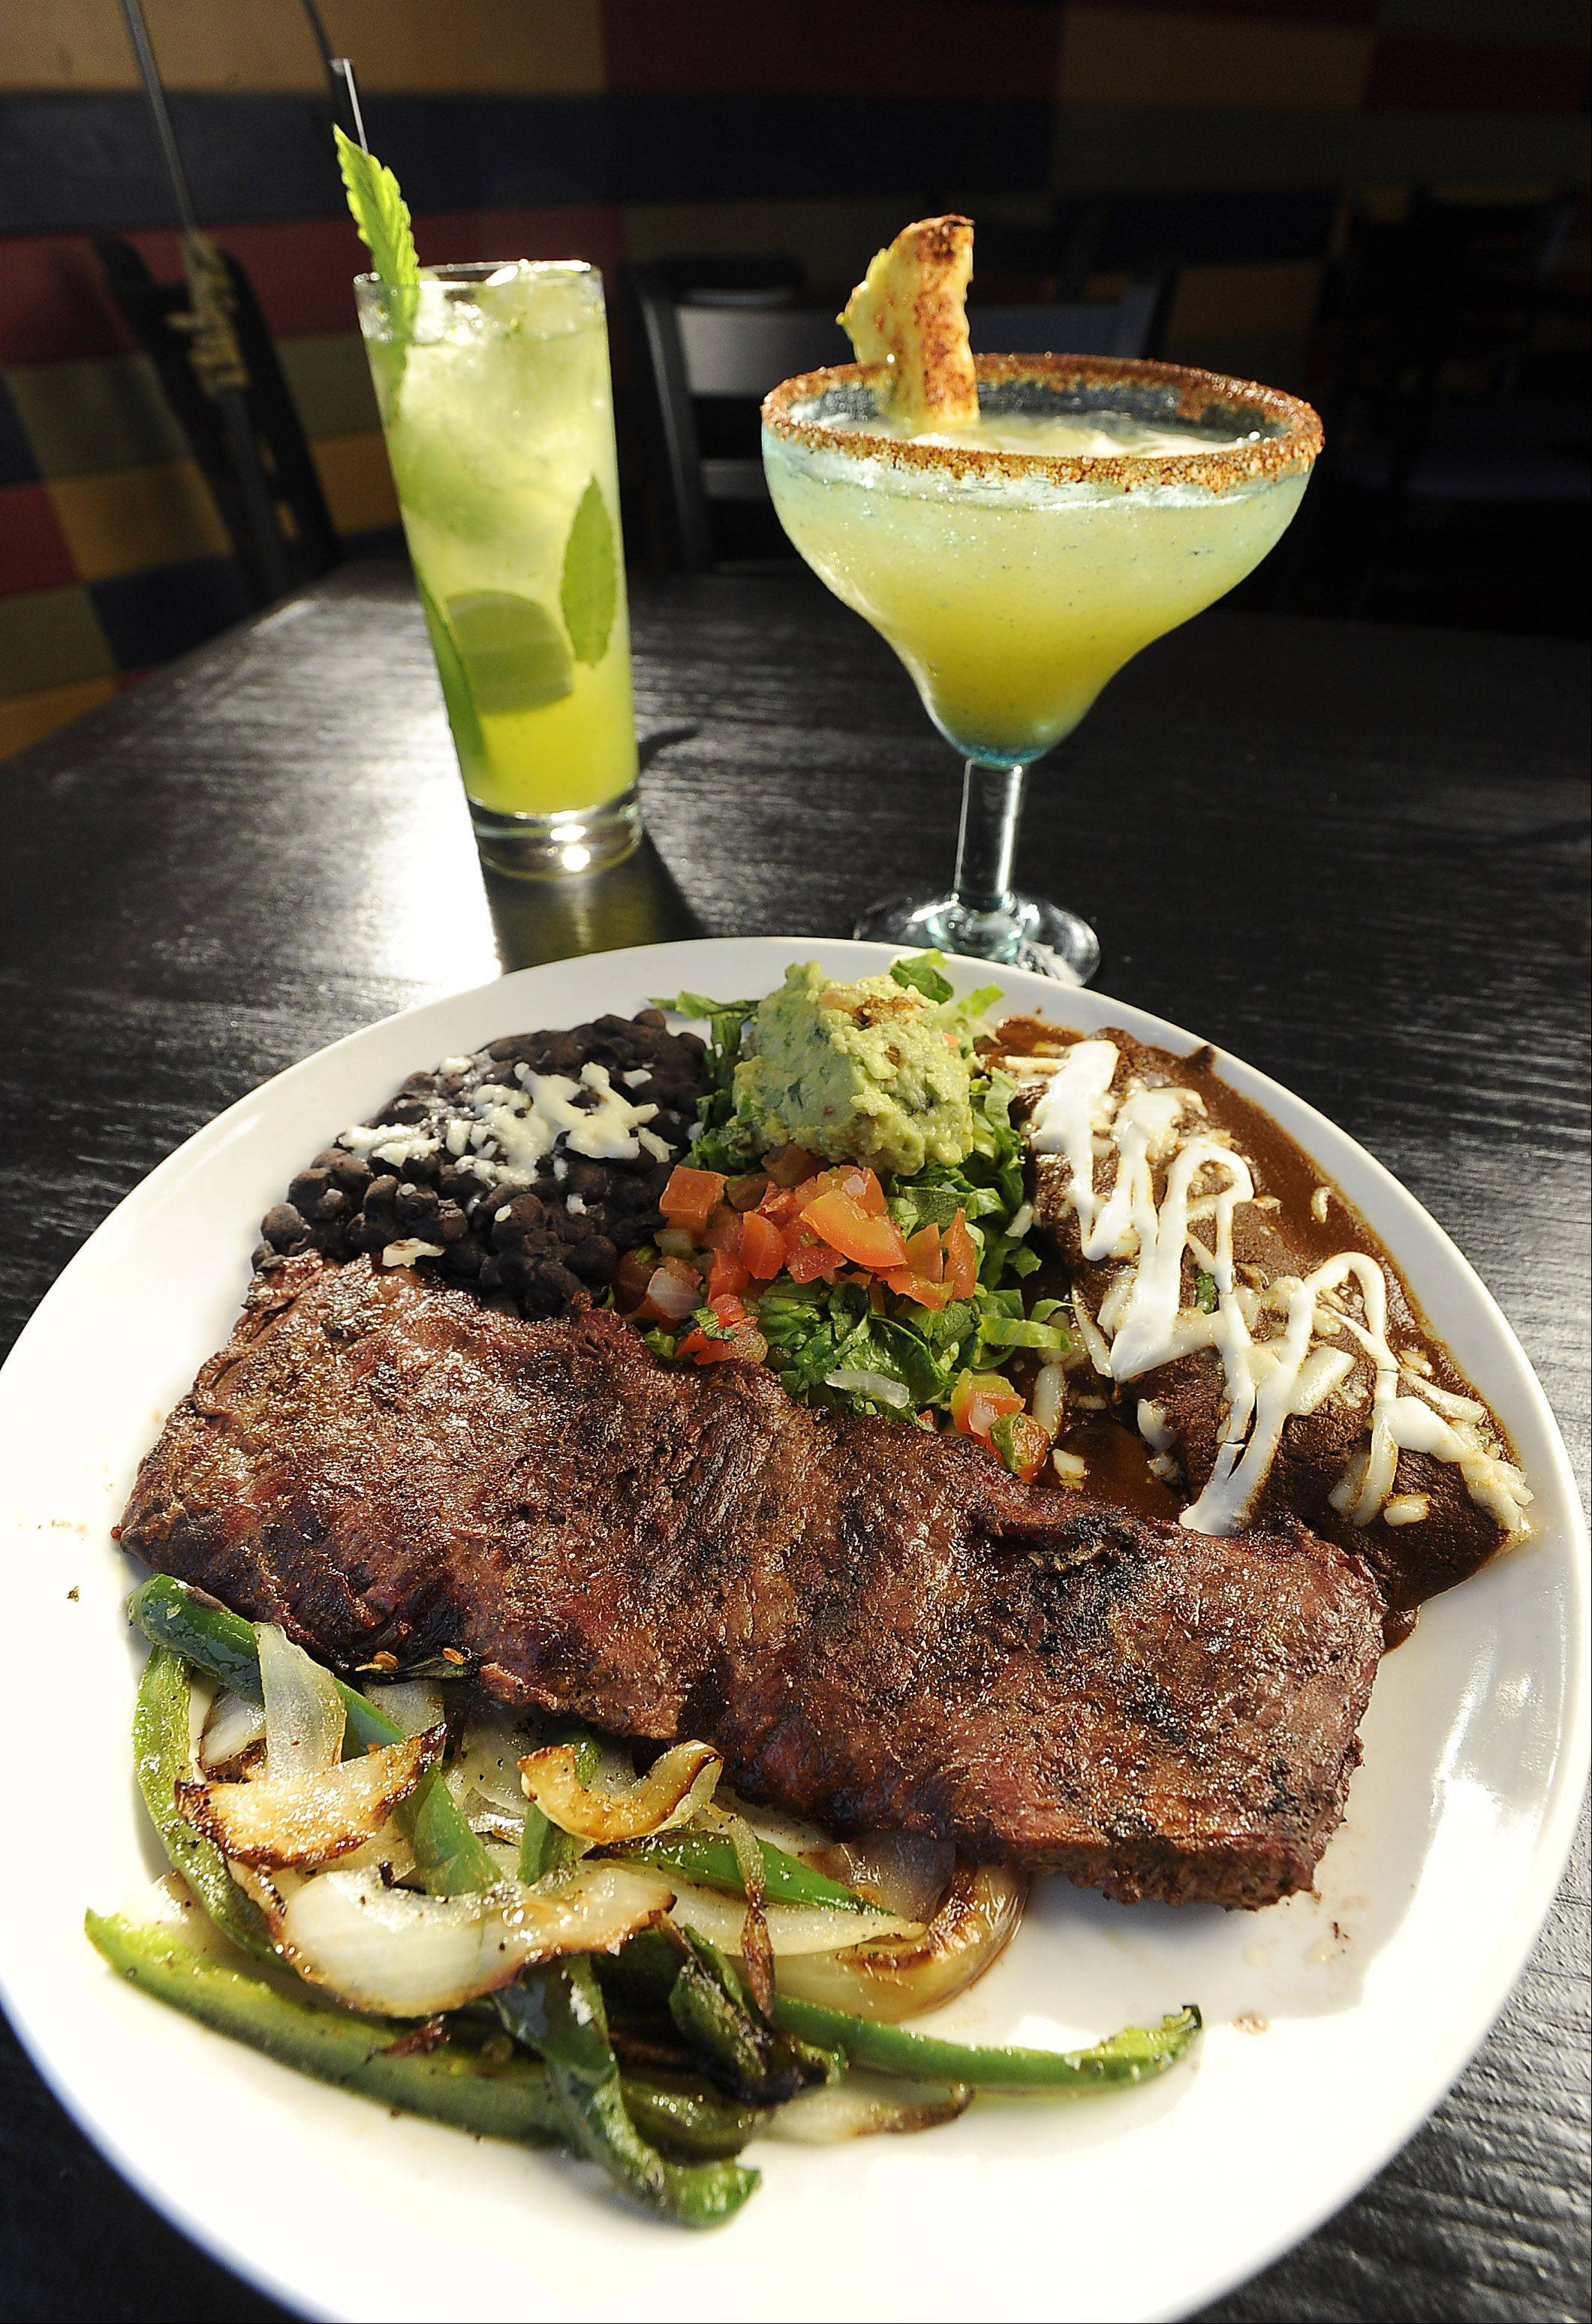 Tampiquena, cilantro-marinated outer skirt steak, is one of the featured items at Mia's Cantina restaurant in Mount Prospect. Try it with a Mia's Mojito, left, or a Pinarita.